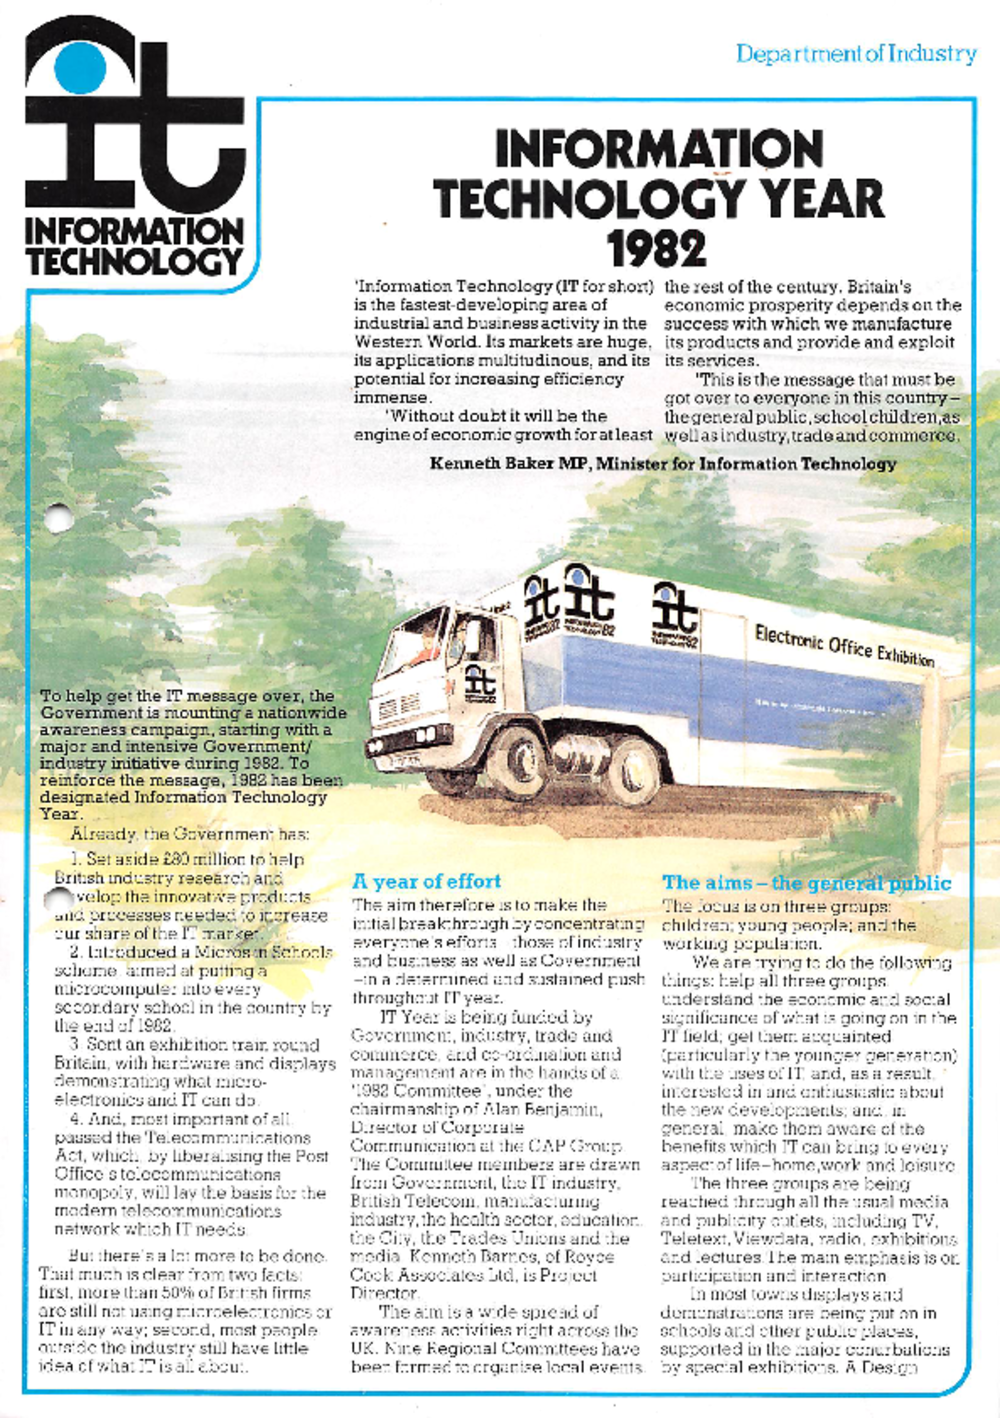 Article: Information Technology Year 1982